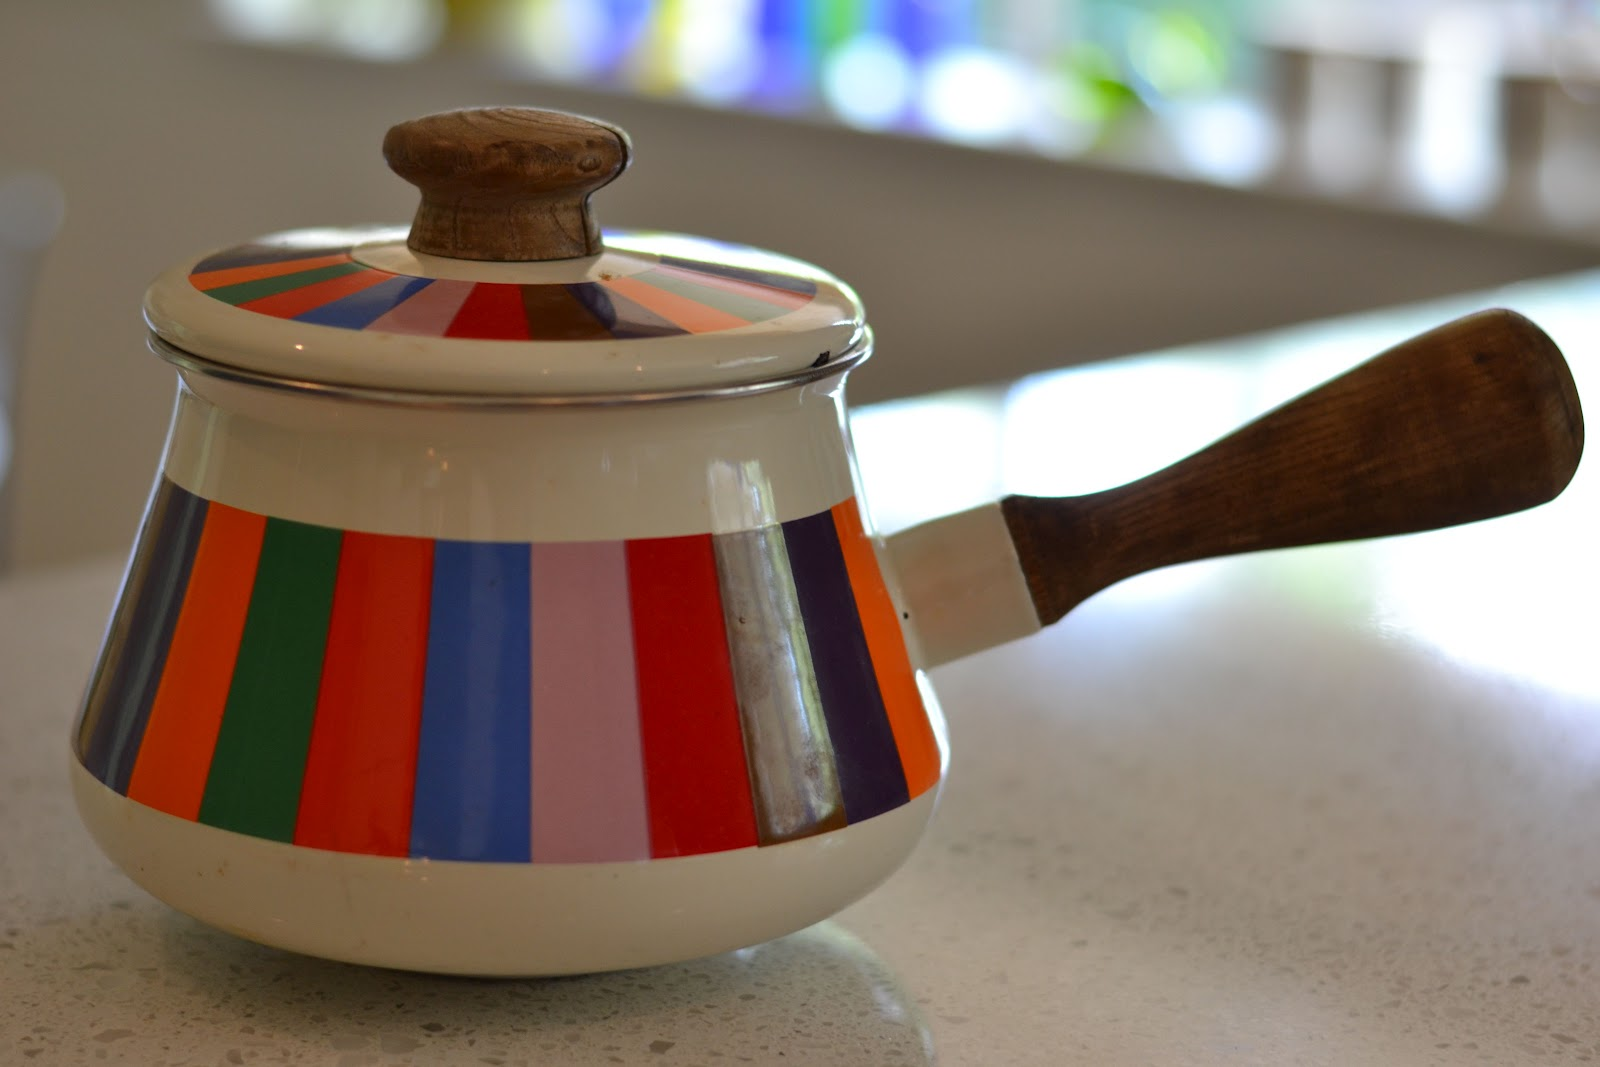 2012 fiestaware colors with Vintage Monday Colorful Enamel Pot on Decorating With Fiestaware And The Newest Color Is besides 2013 Ram Reviews Yahoo moreover Would you trust diane keaton furthermore Polar Heart Rate Zones Chart besides Vintage Monday Colorful Enamel Pot.